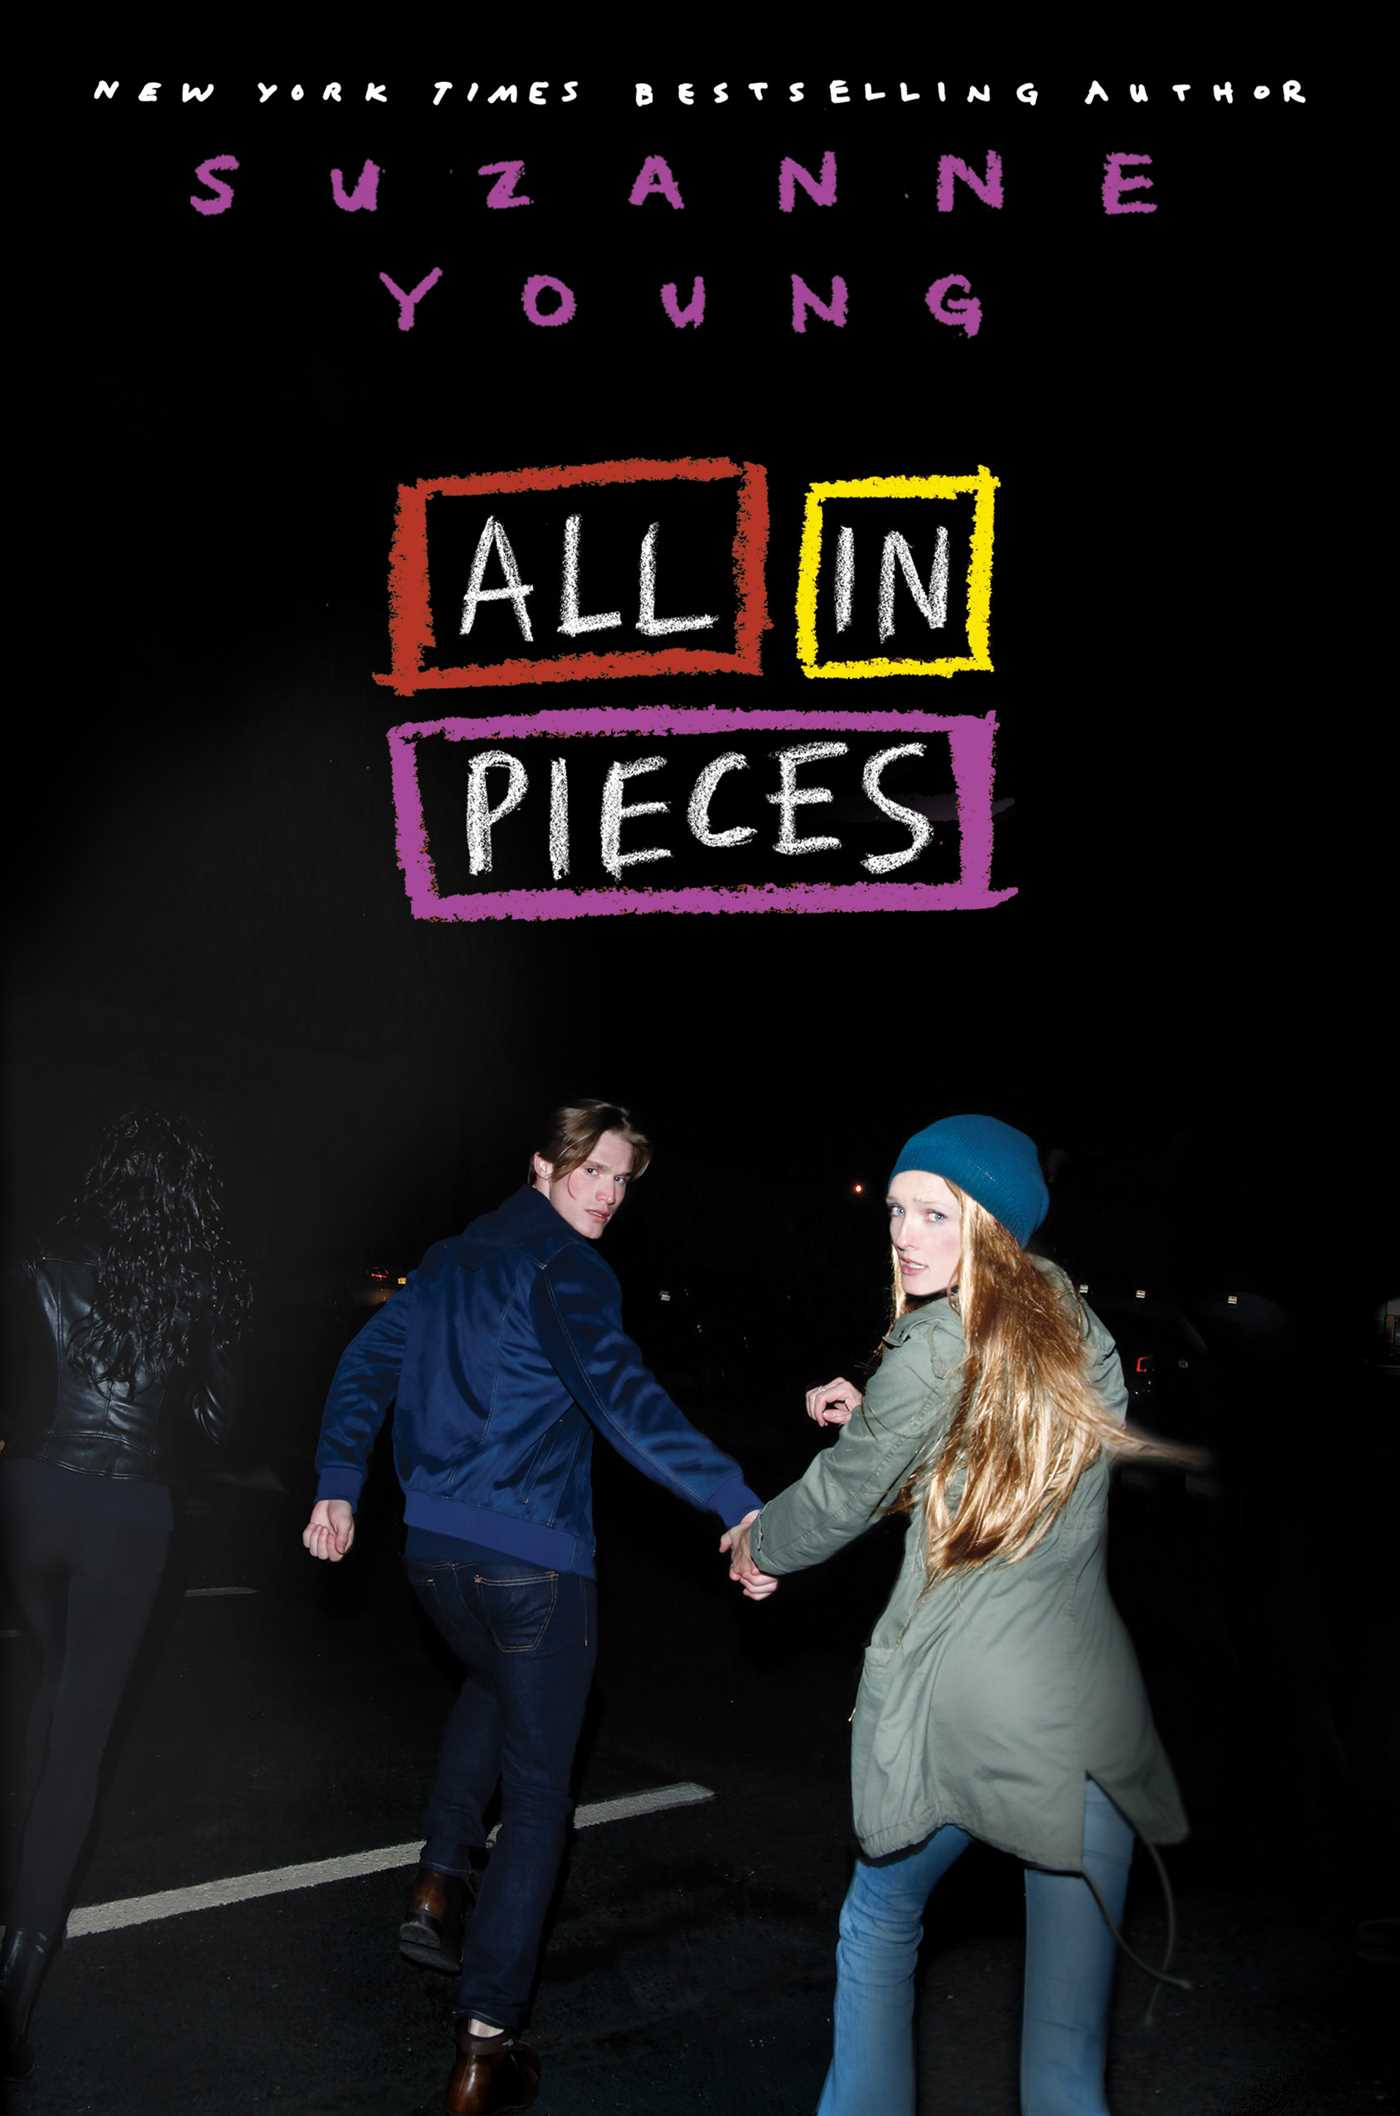 Image result for all in pieces suzanne young